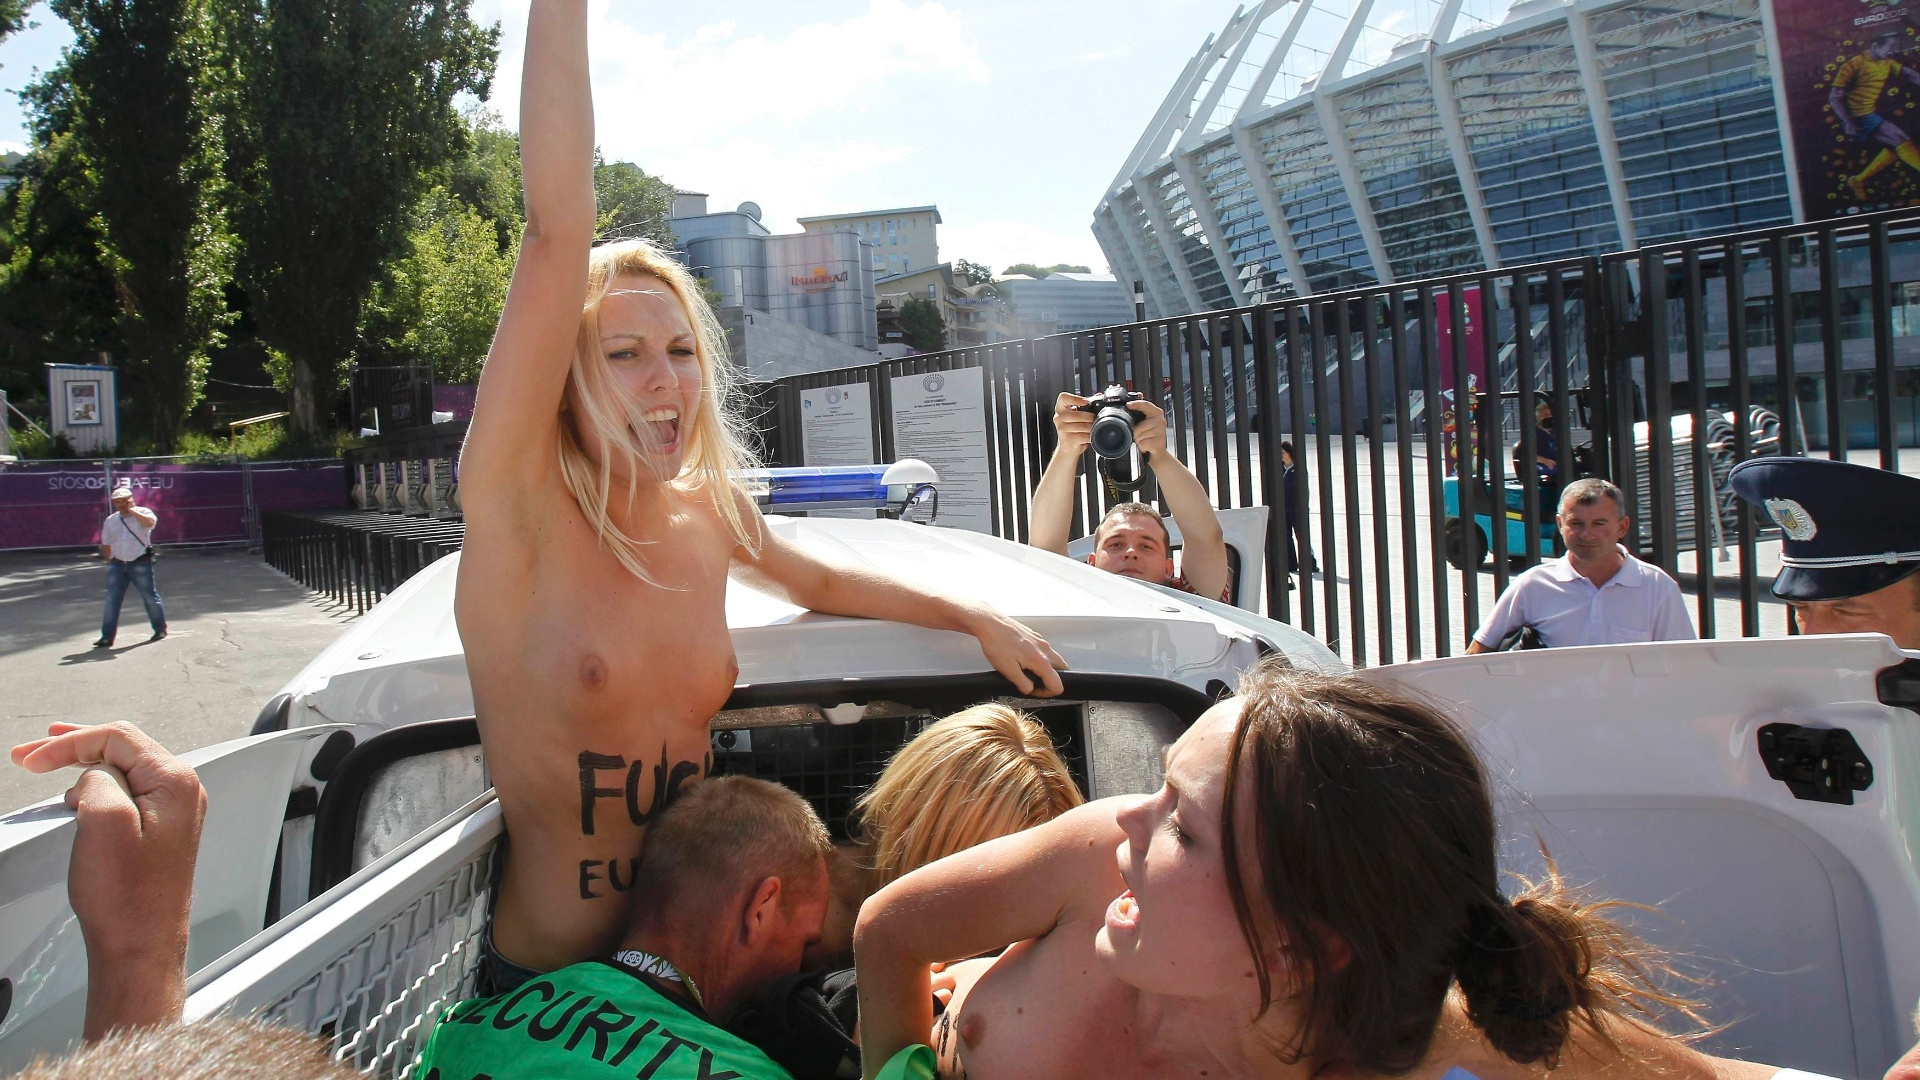 24.jun.2012 - Policiais detm manifestantes do grupo feminista Femen que protestavam no estdio olmpico em Kiev, na Ucrnia, durante partida do campeonato Euro 2012. O grupo tem organizado vrios protestos sob o lema 